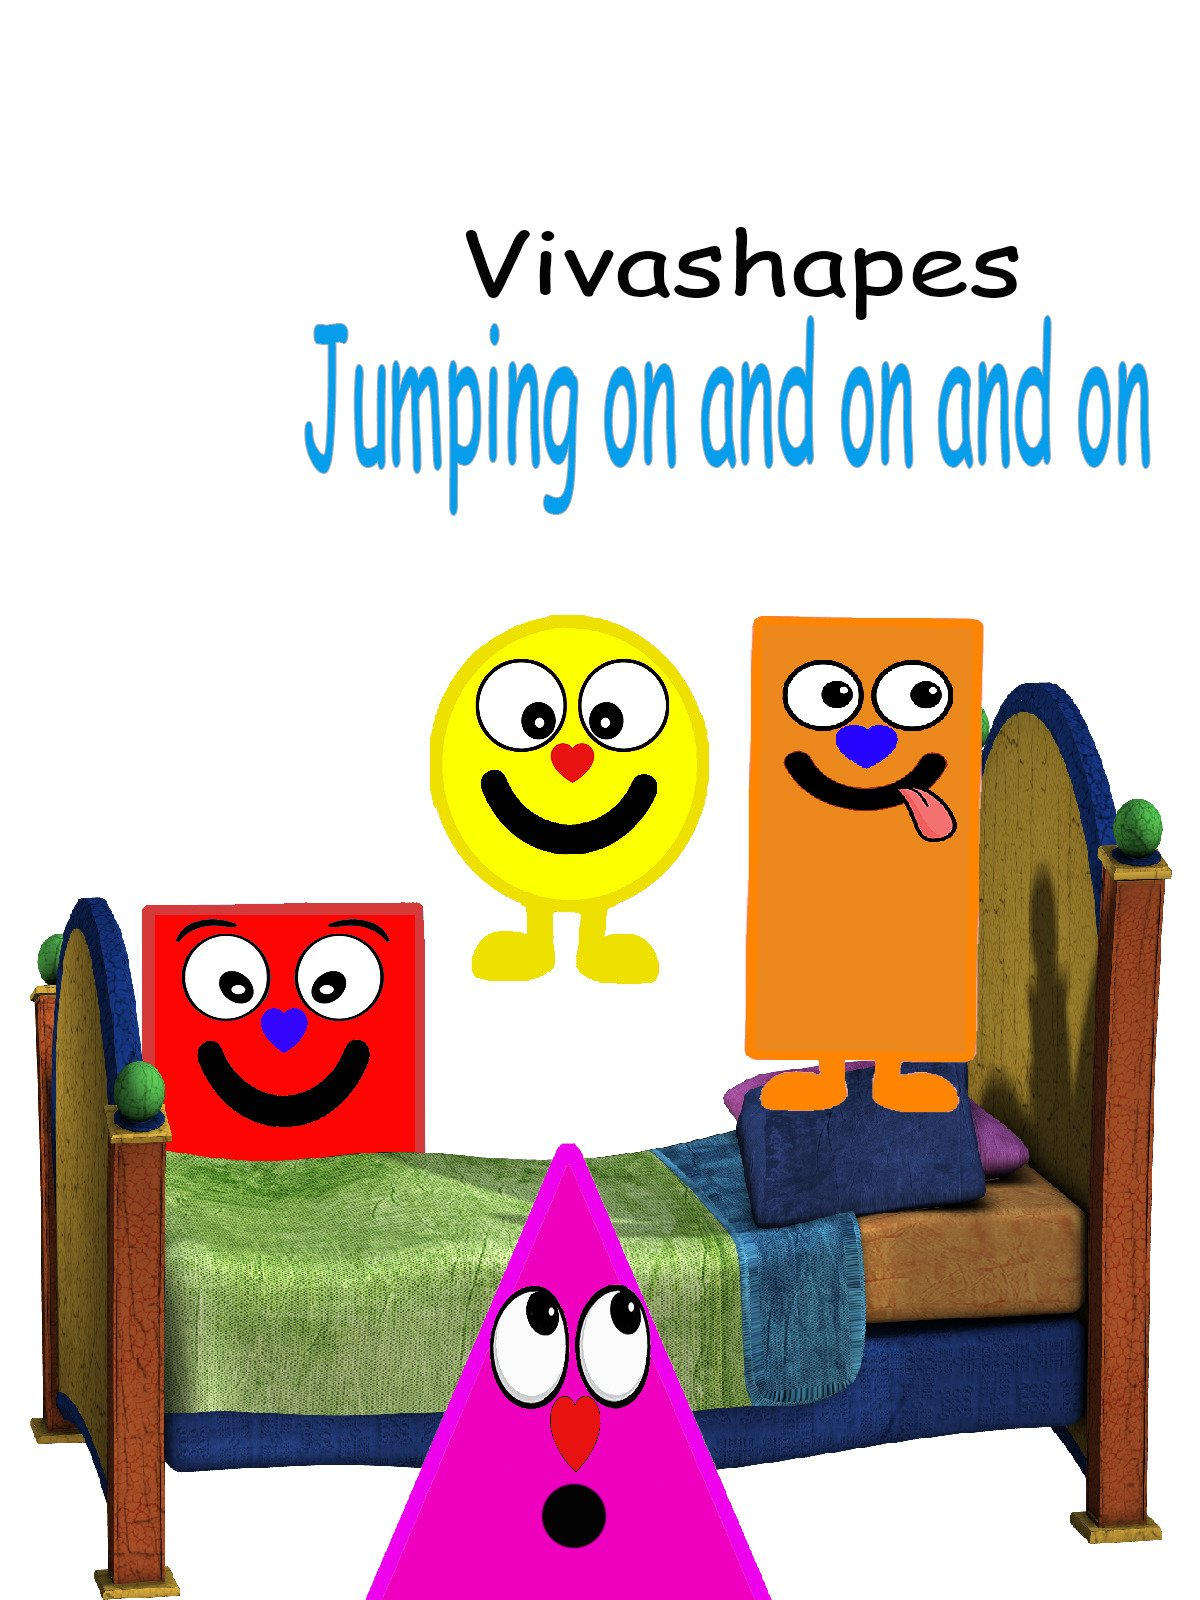 Vivashapes Jumping on and on and on.